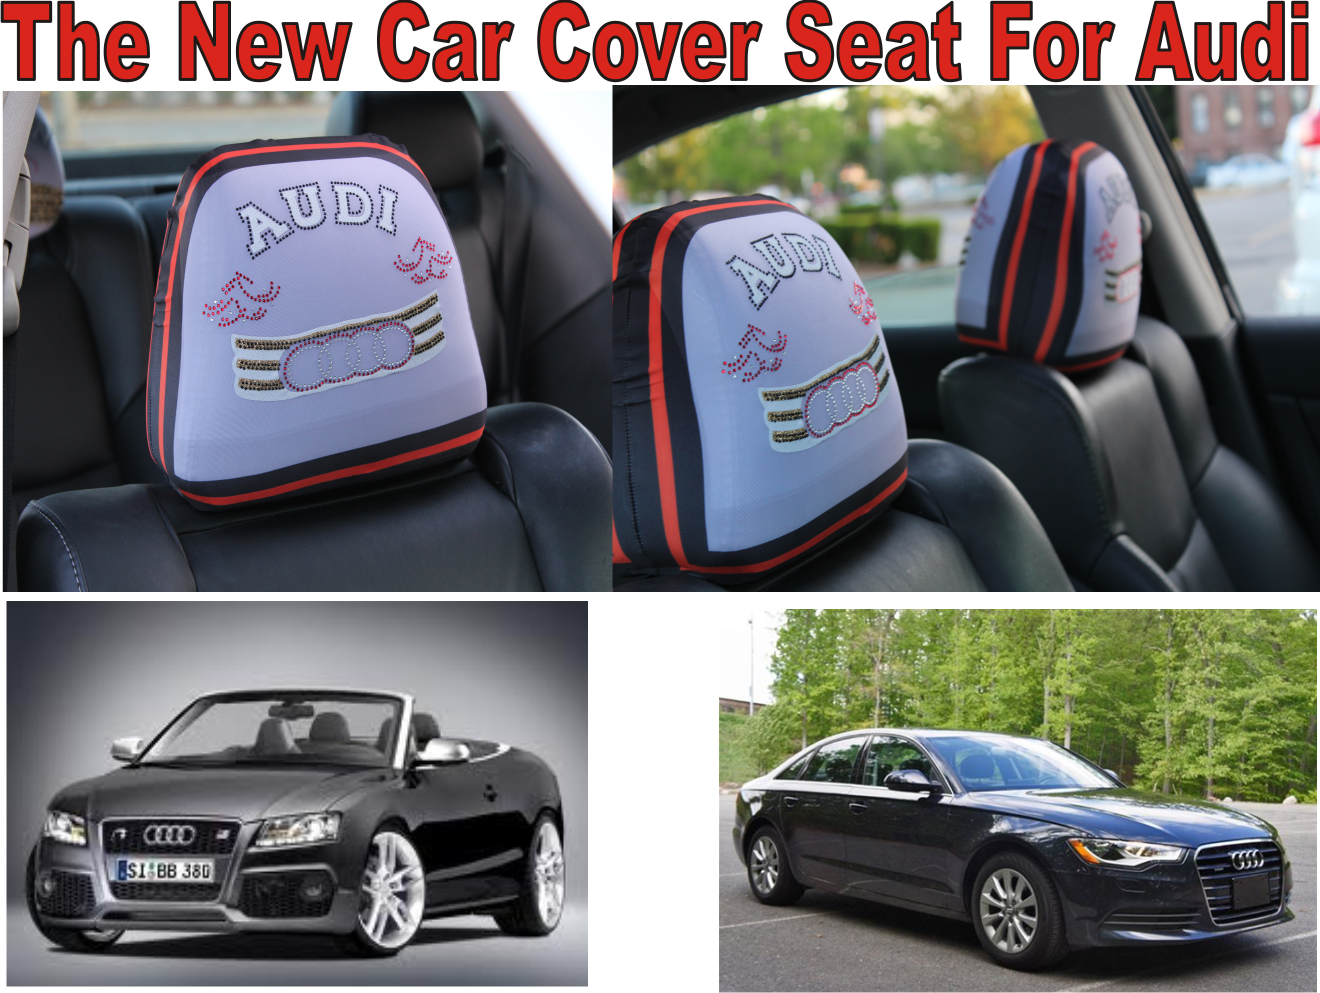 images/Car cover seat for audi.png